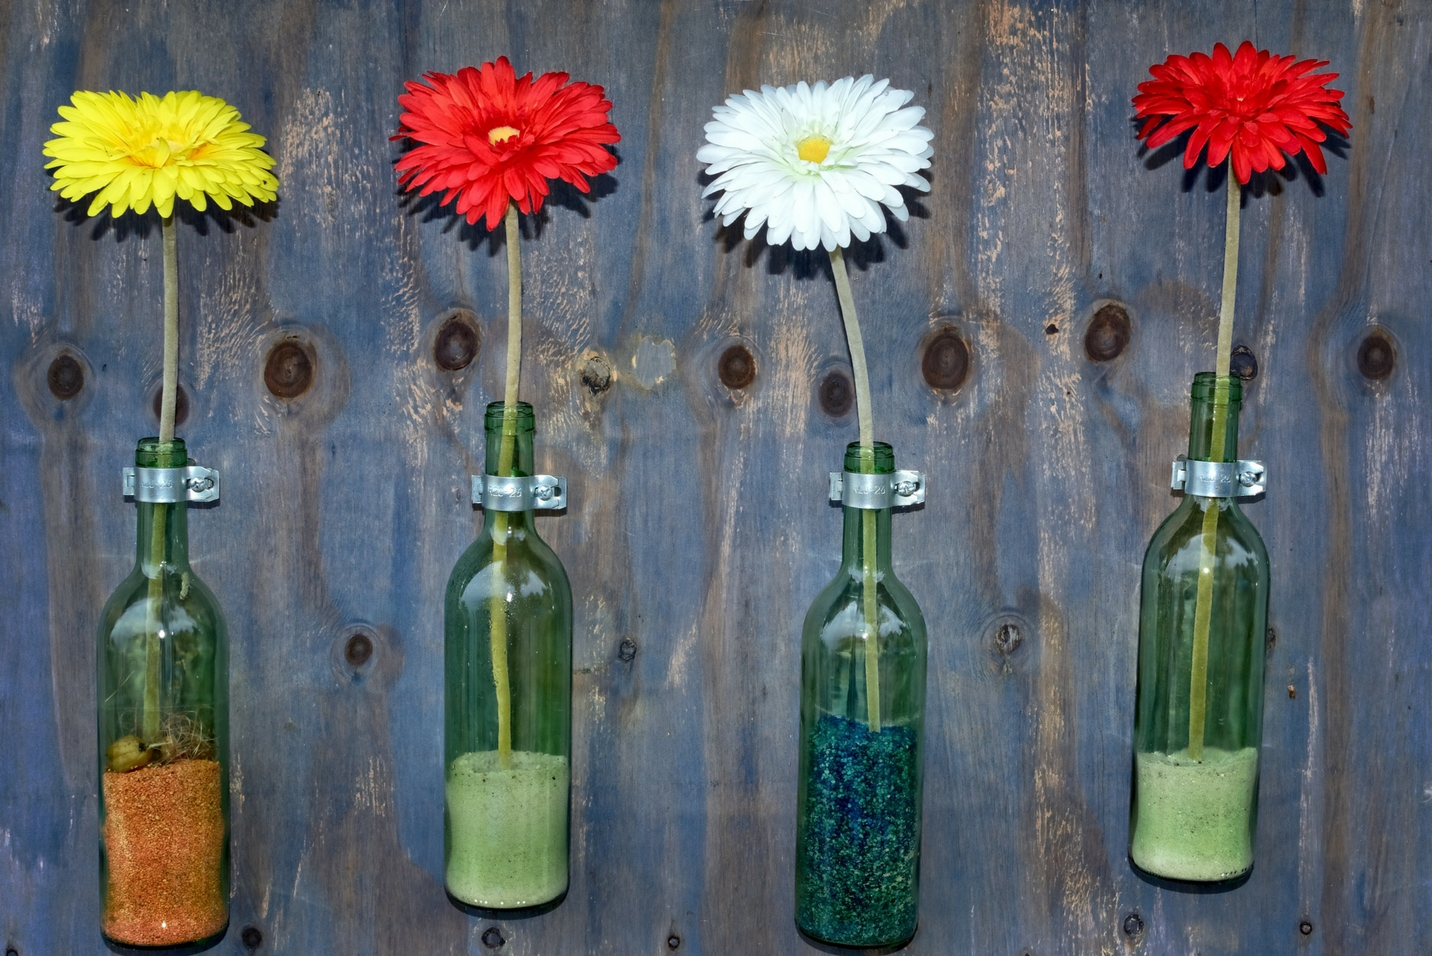 Decorative glass recycled bottles at party